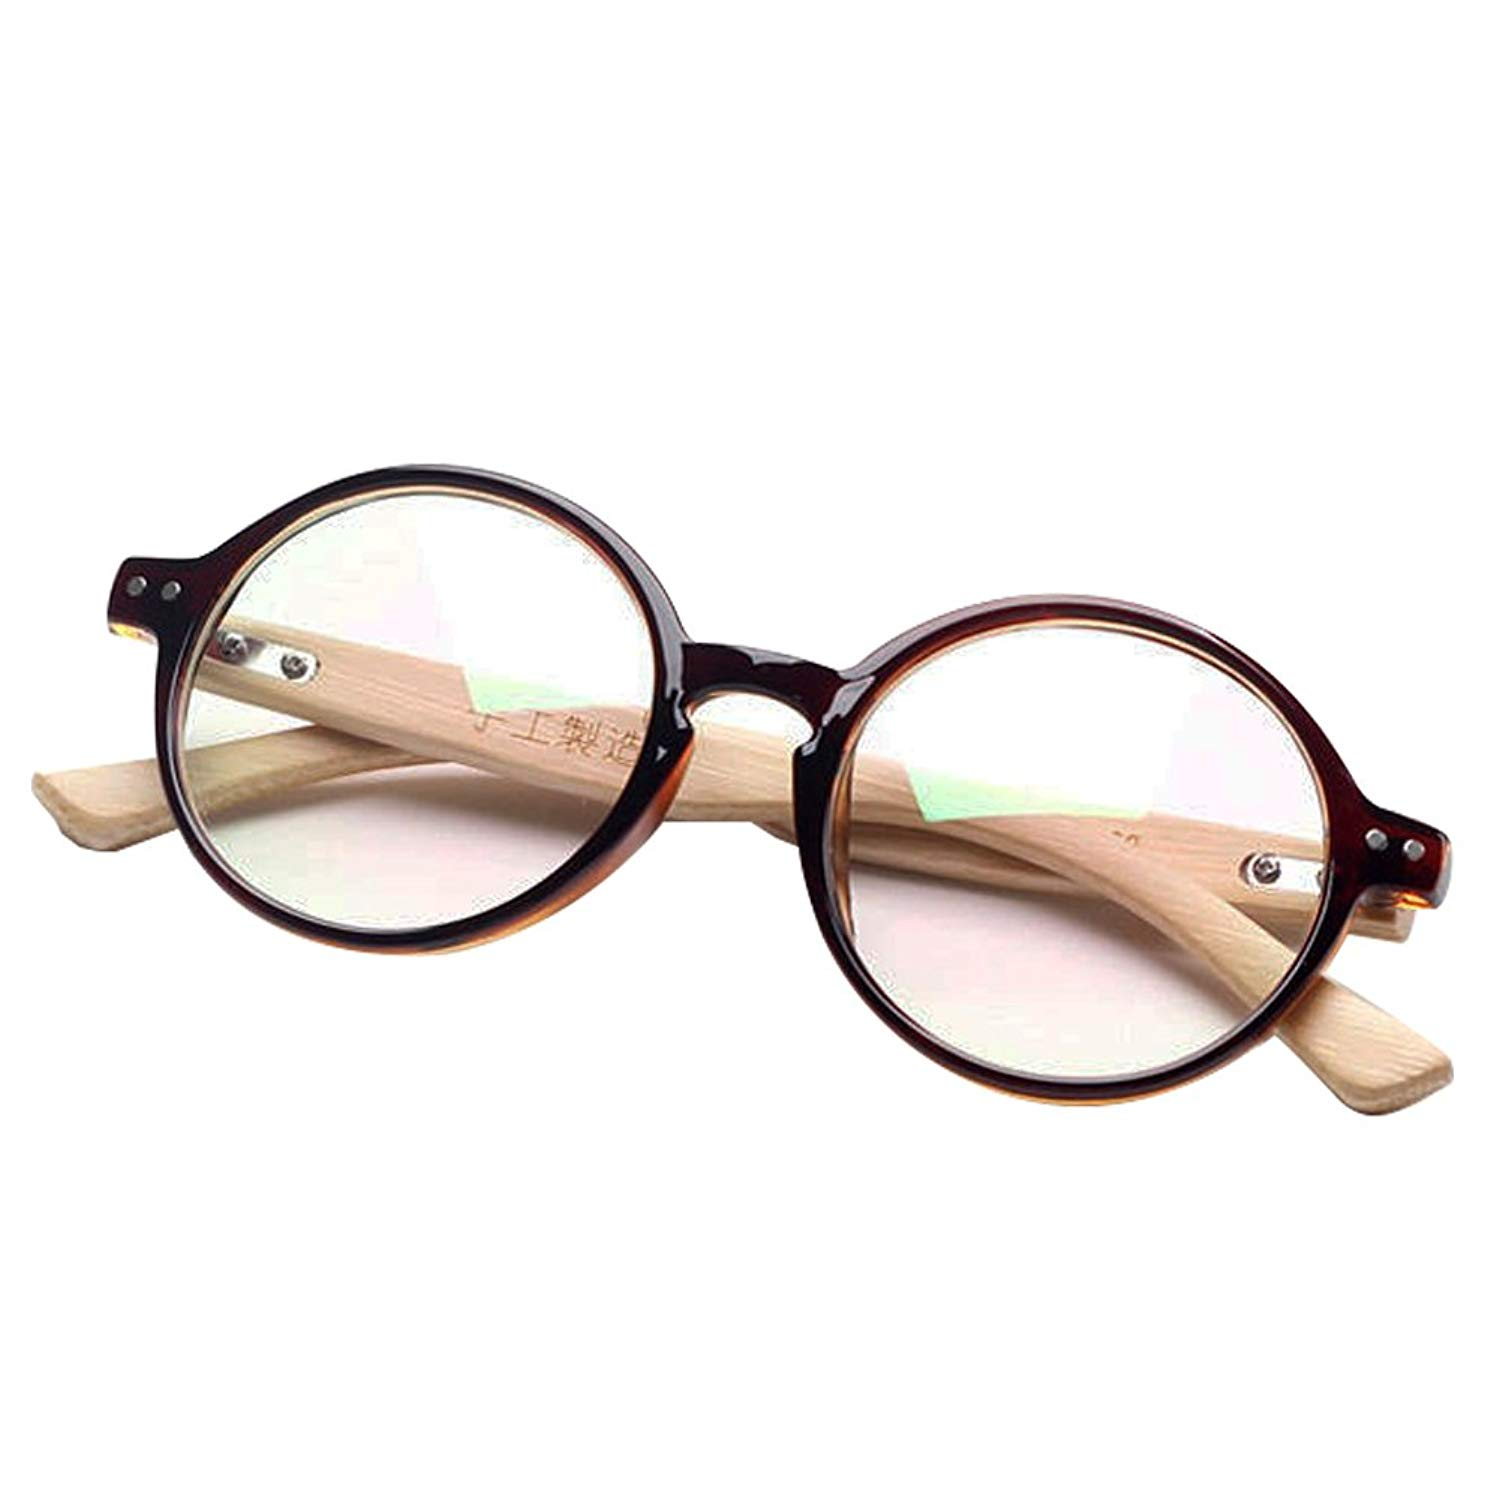 Brown Handmade Bamboo Vintage Retro Round Tortoise Eyeglass Frames Spectacles Eyewear wire without prescription lenses boys